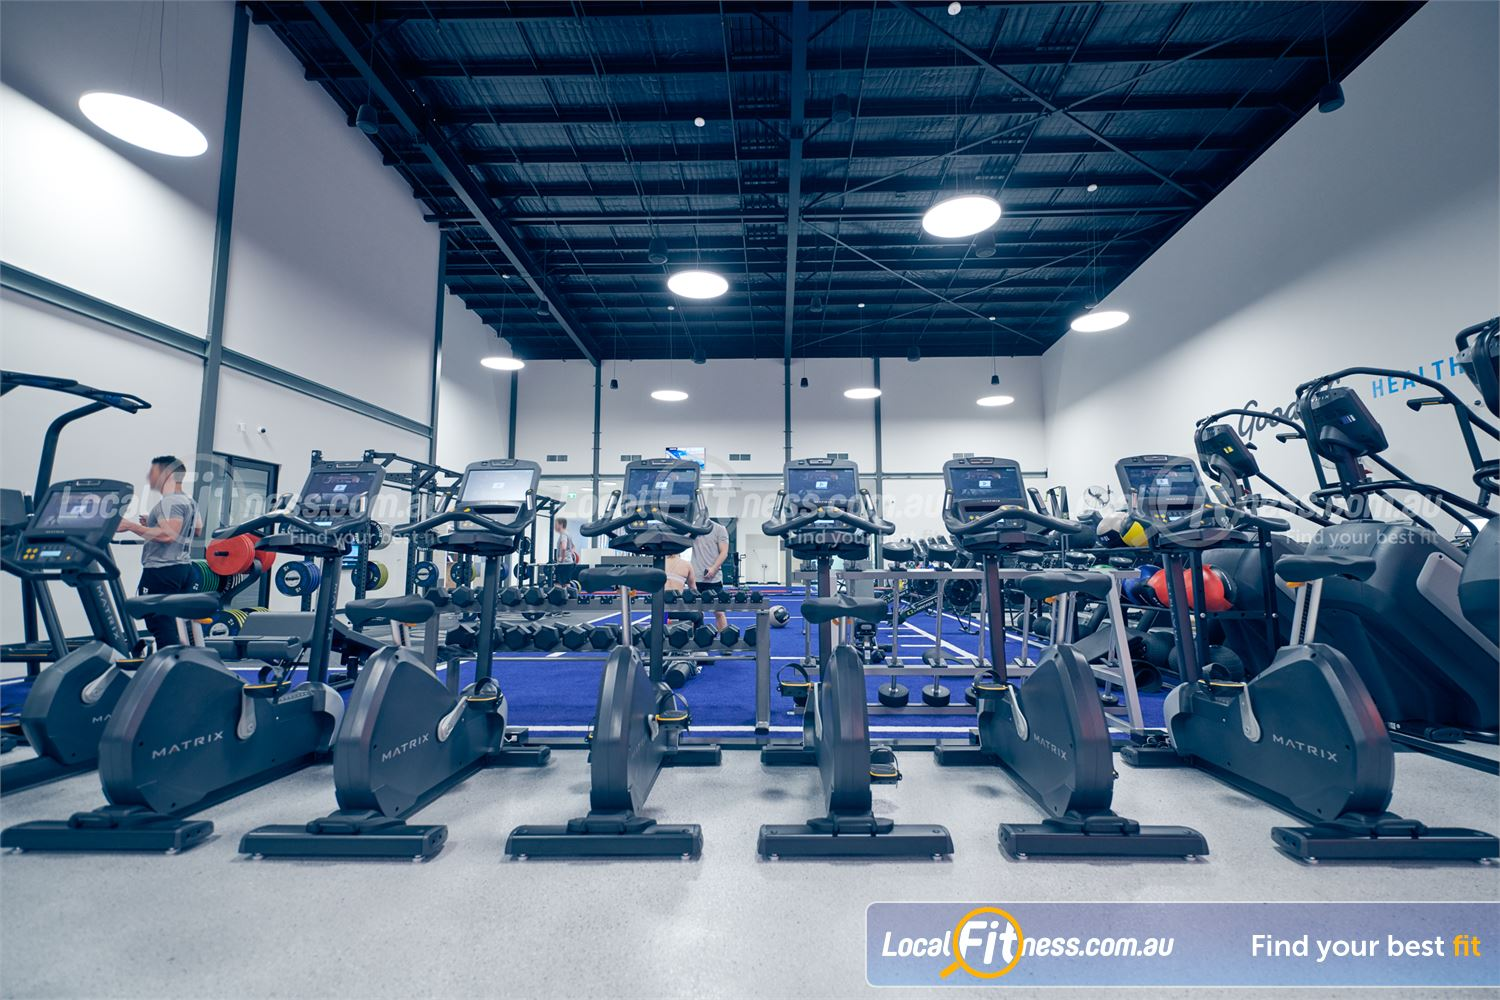 Goodlife Health Clubs Near Heathmont Our Ringwood gym will include state of the art cardio.